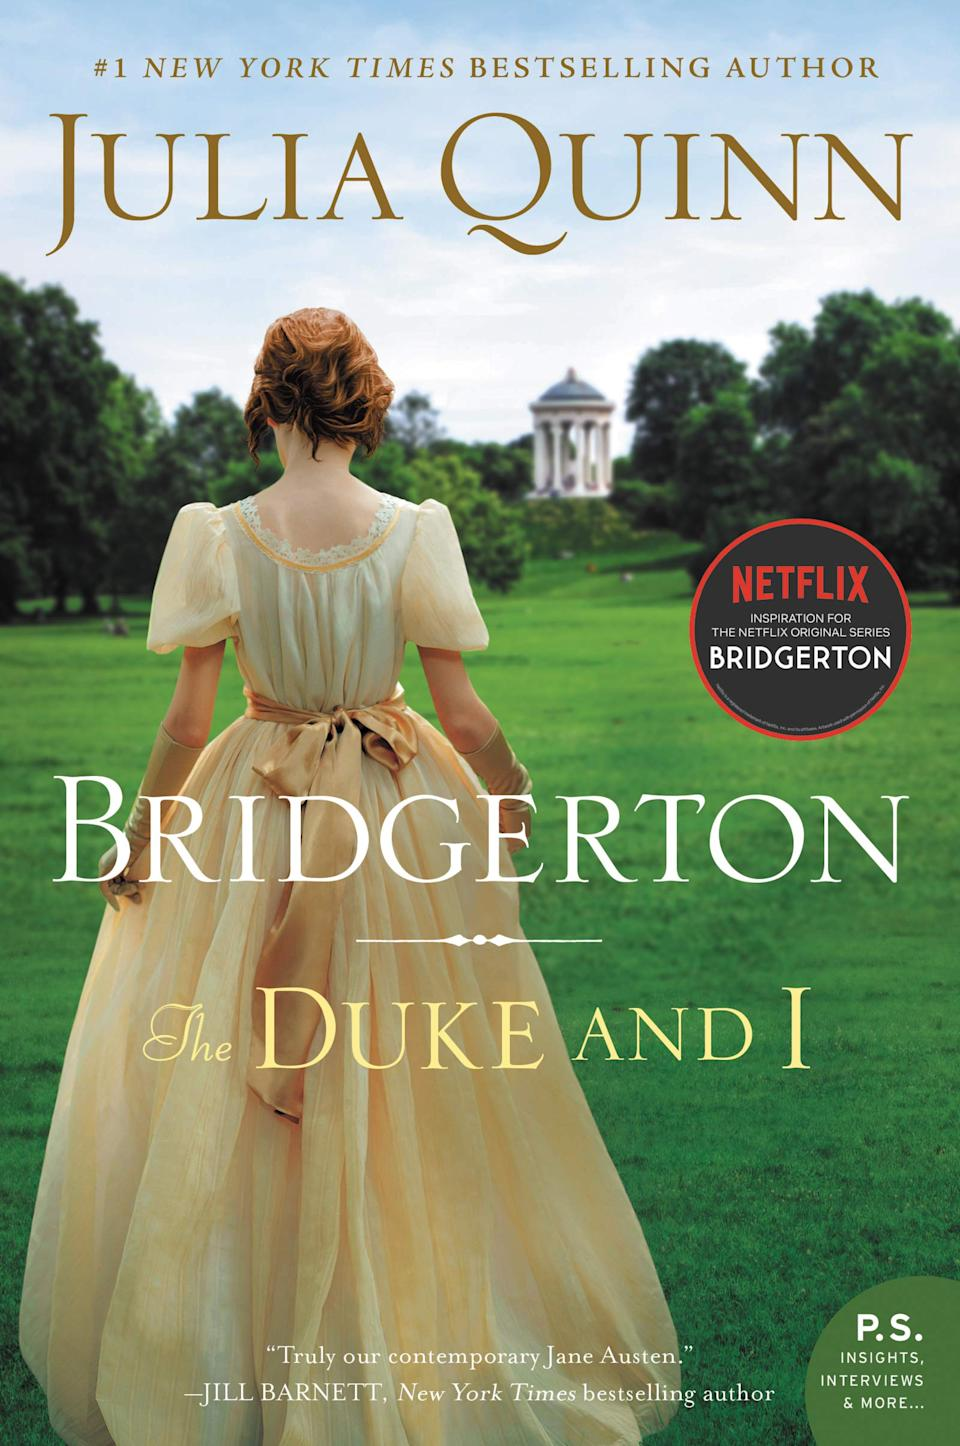 The Duke and I: Bridgerton. Image via Amazon.